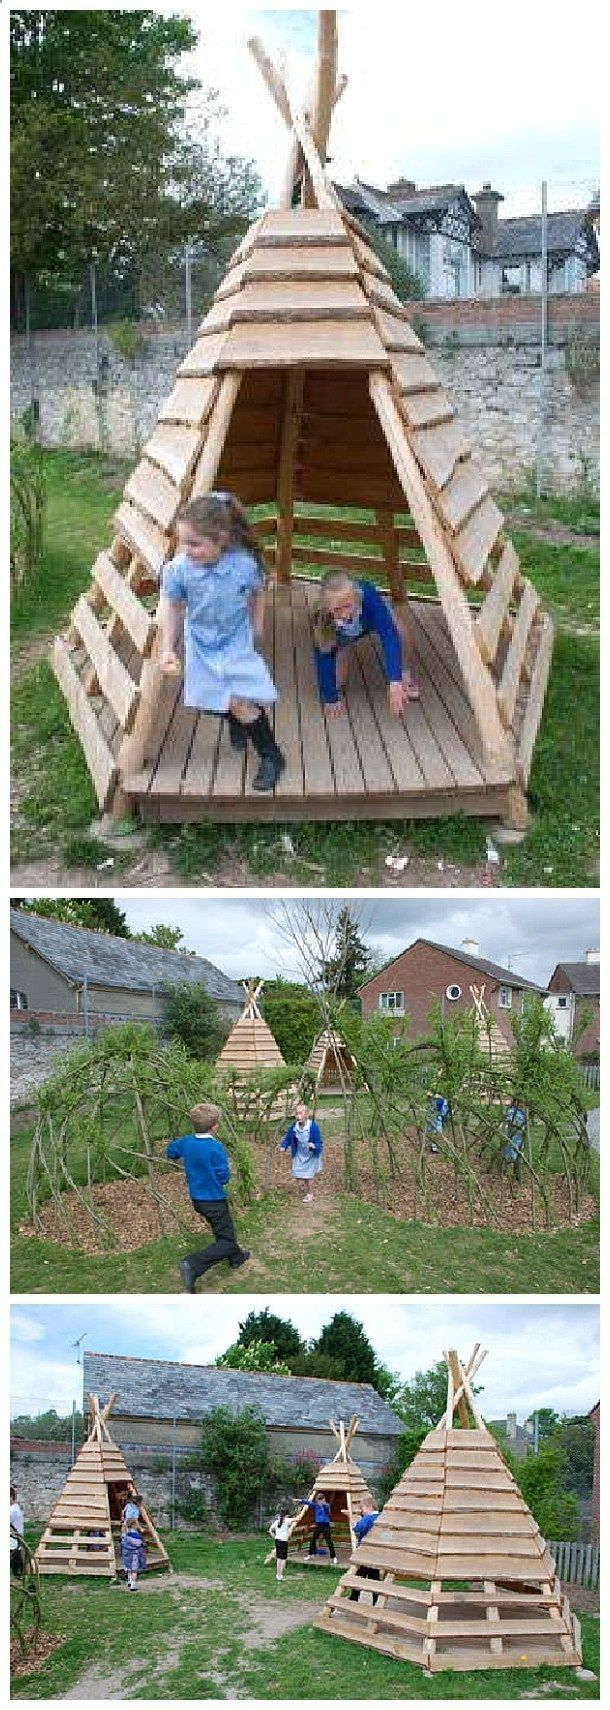 Pallet projects diy outdoor teepee for a kids playground or the pallet projects diy outdoor teepee for a kids playground or the backyard do it solutioingenieria Images